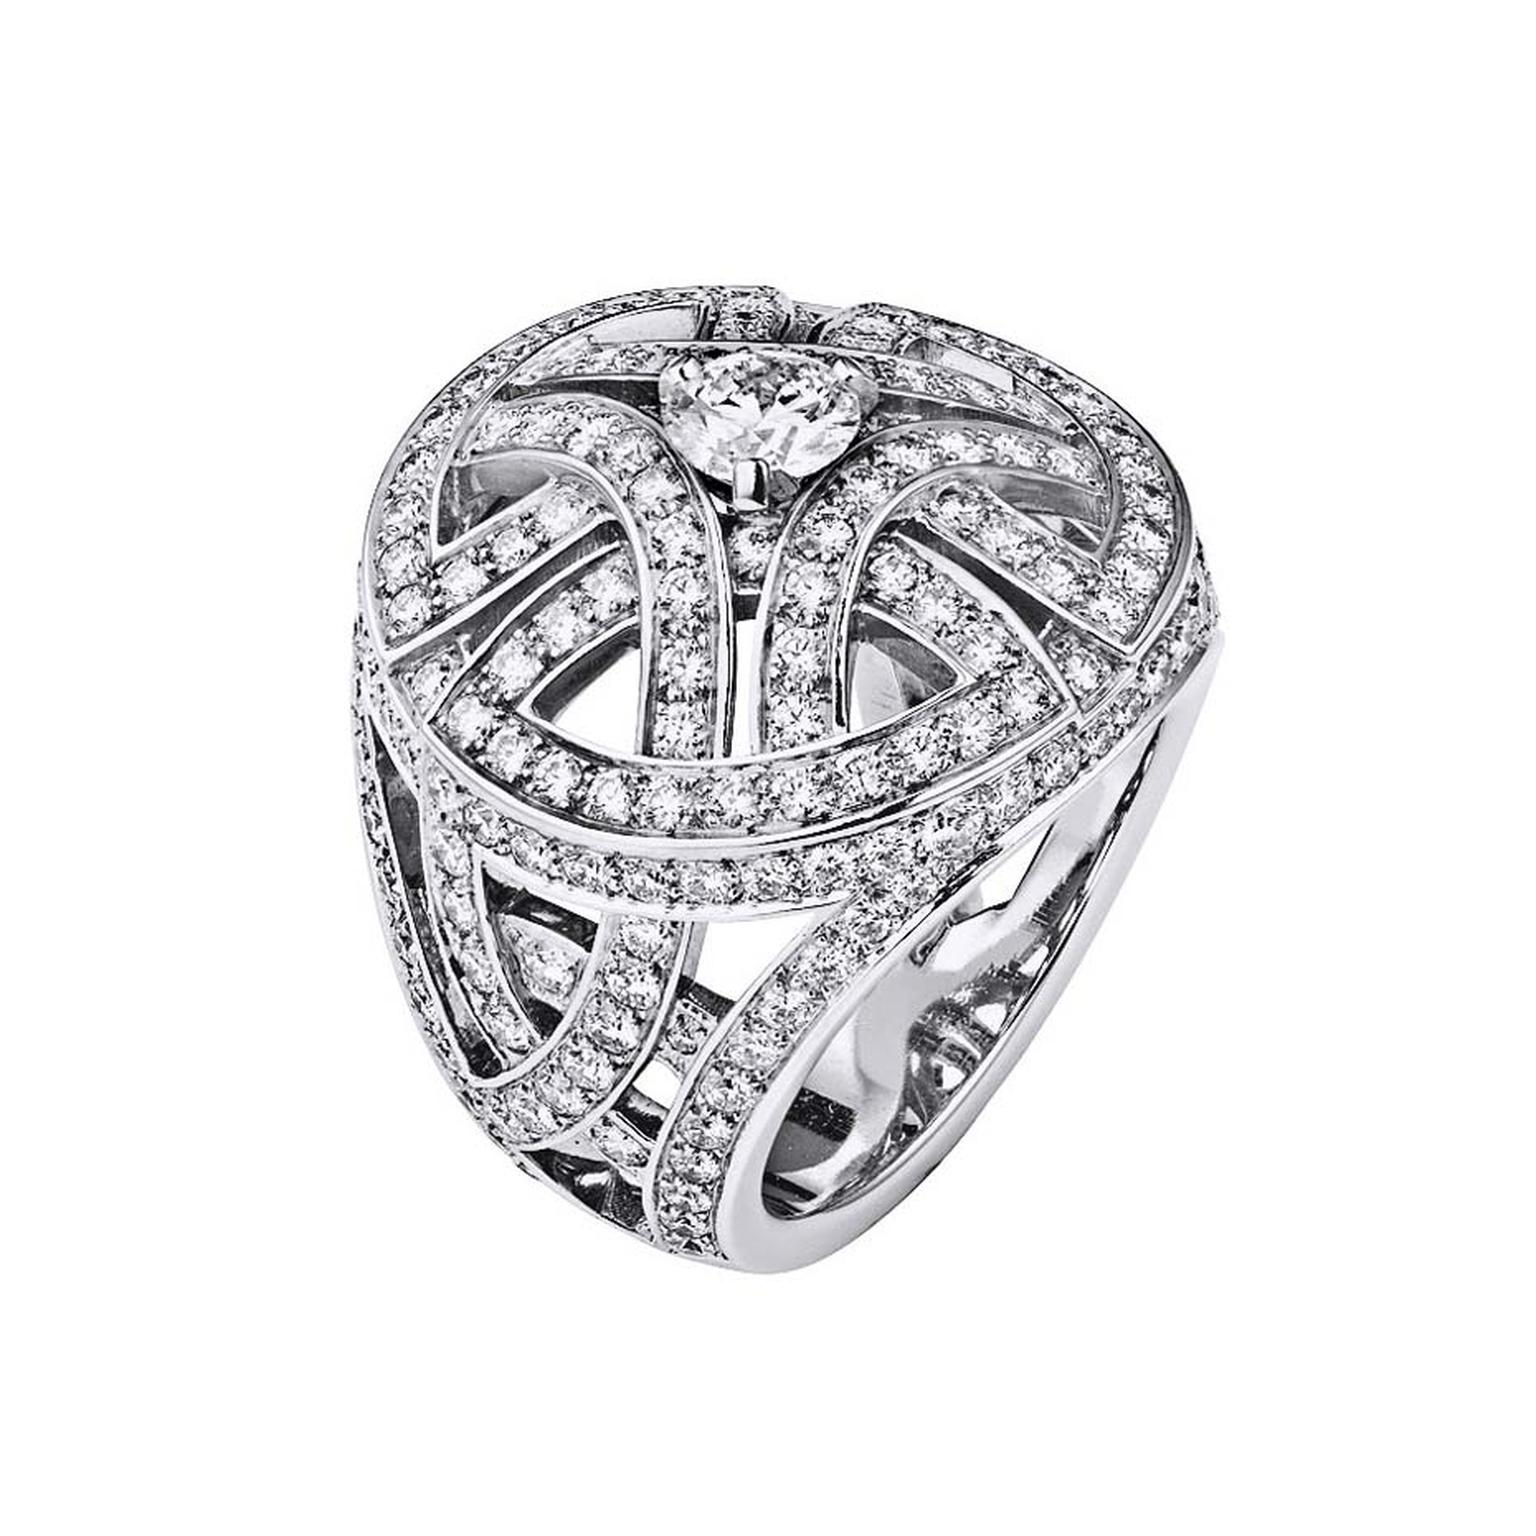 Cartier Paris Nouvelle Vague ring with arabesque motifs pavéd entirely with diamonds and set with a dazzling brilliant-cut diamond in the centre.